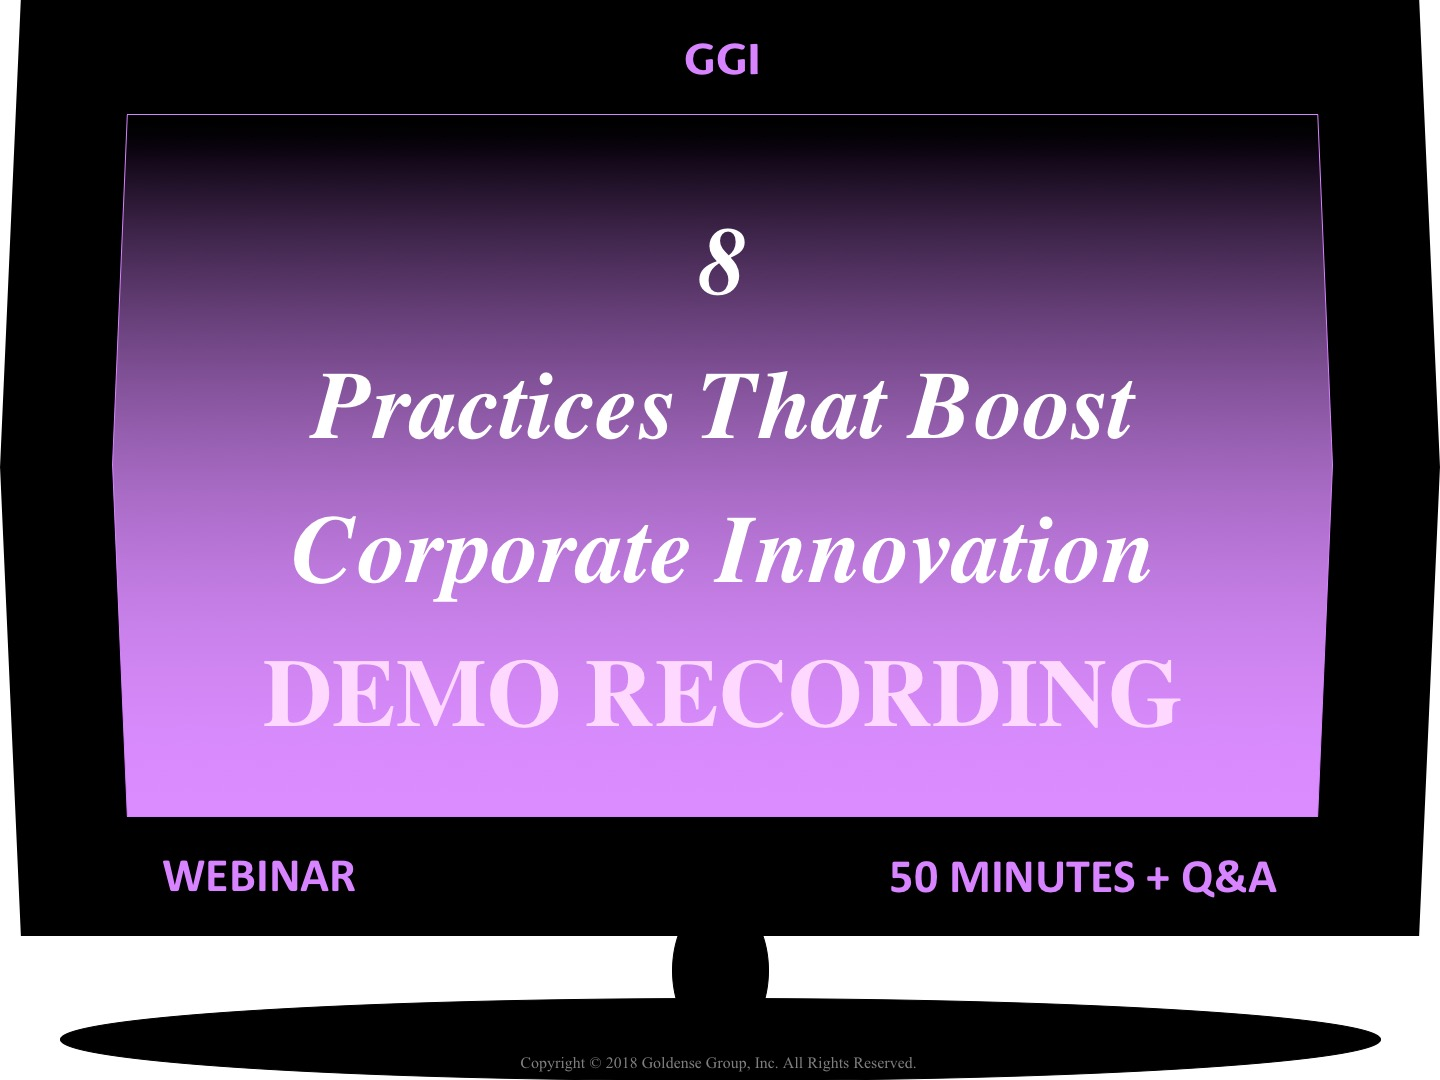 Corporate Innovation Webinar